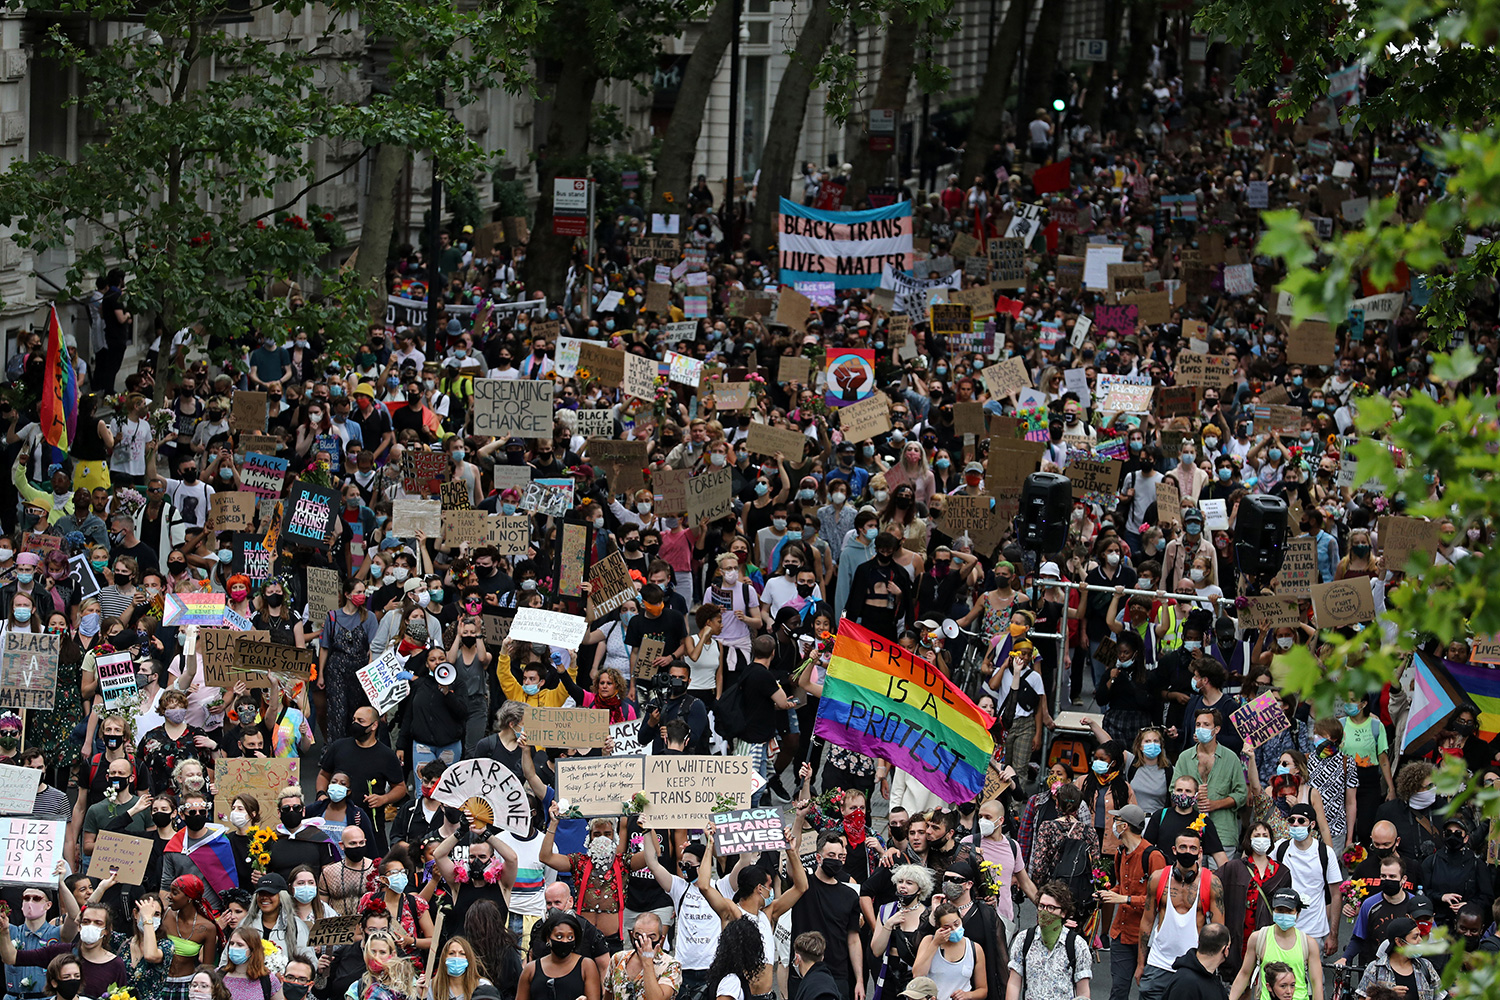 The photo shows a massive demonstration from high above with people walking through the streets of London carrying signs.